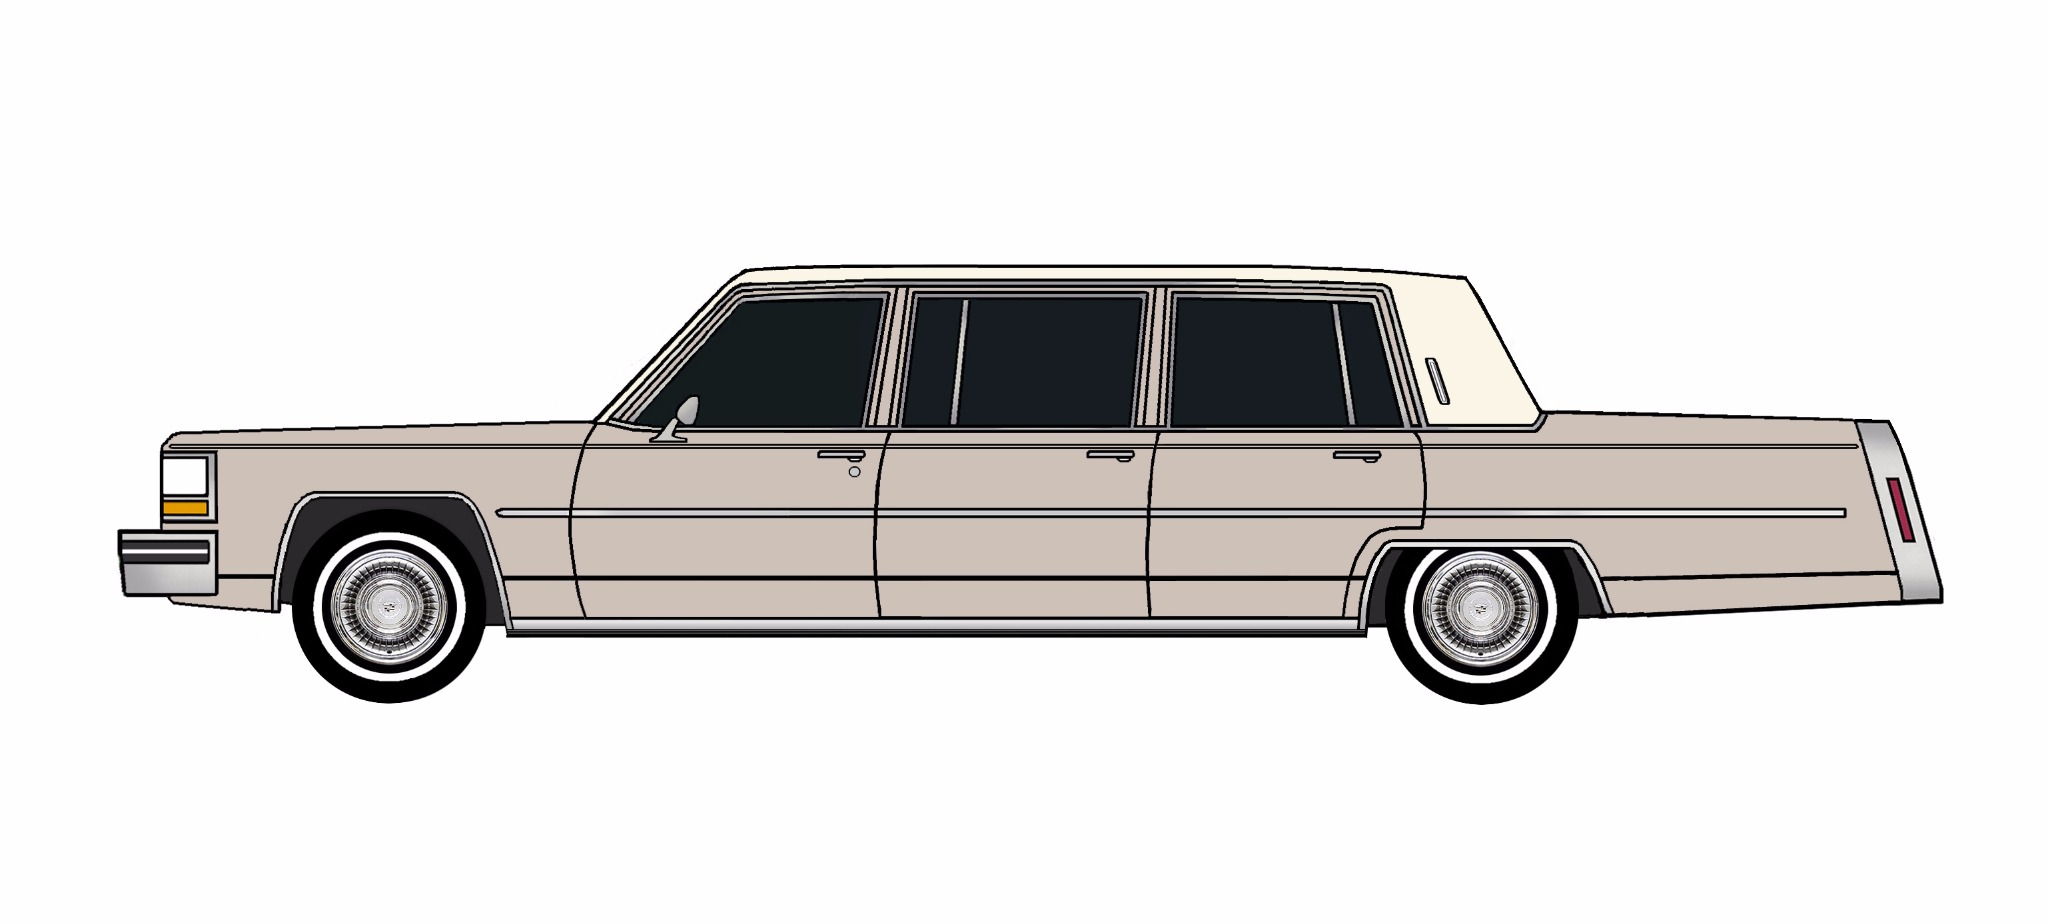 1980 Cadillac Fleetwood Funeral Limo LAVENDER